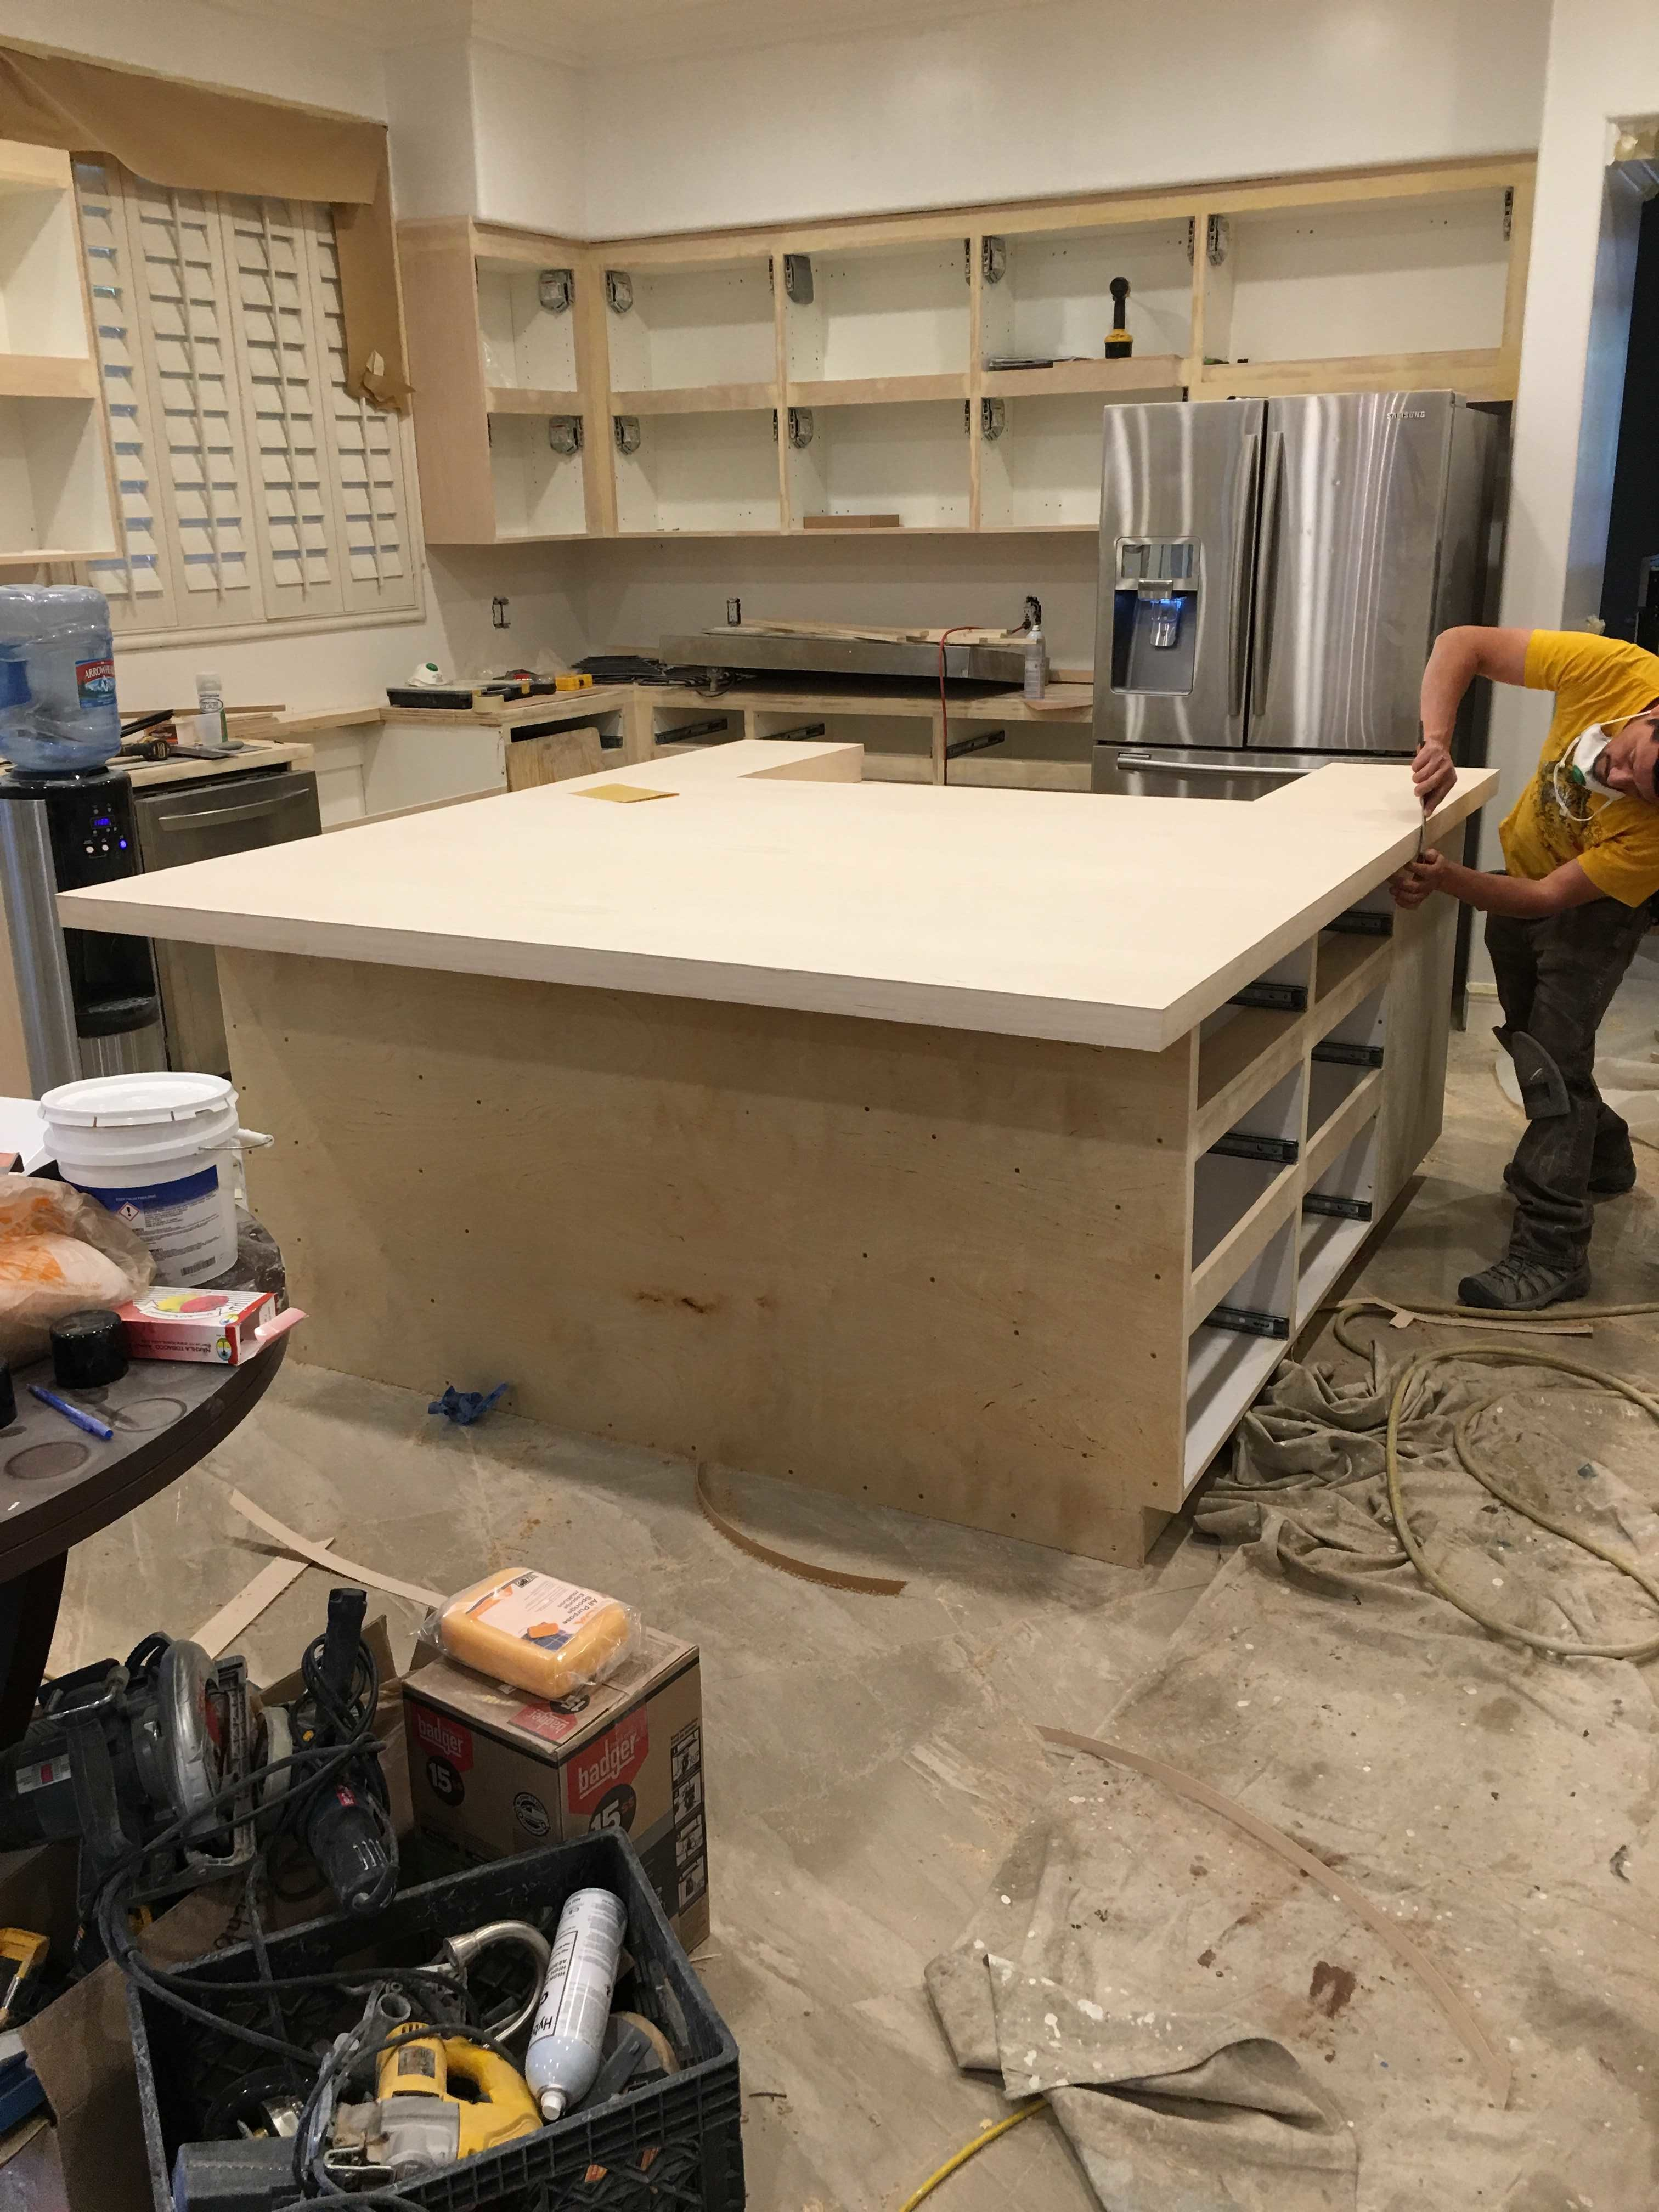 kitchens kitchen remodel las vegas Global Design Construction is one of best Services Provider In Las Vegas and deal all your needs such as Framing Contractors In Las Vegas